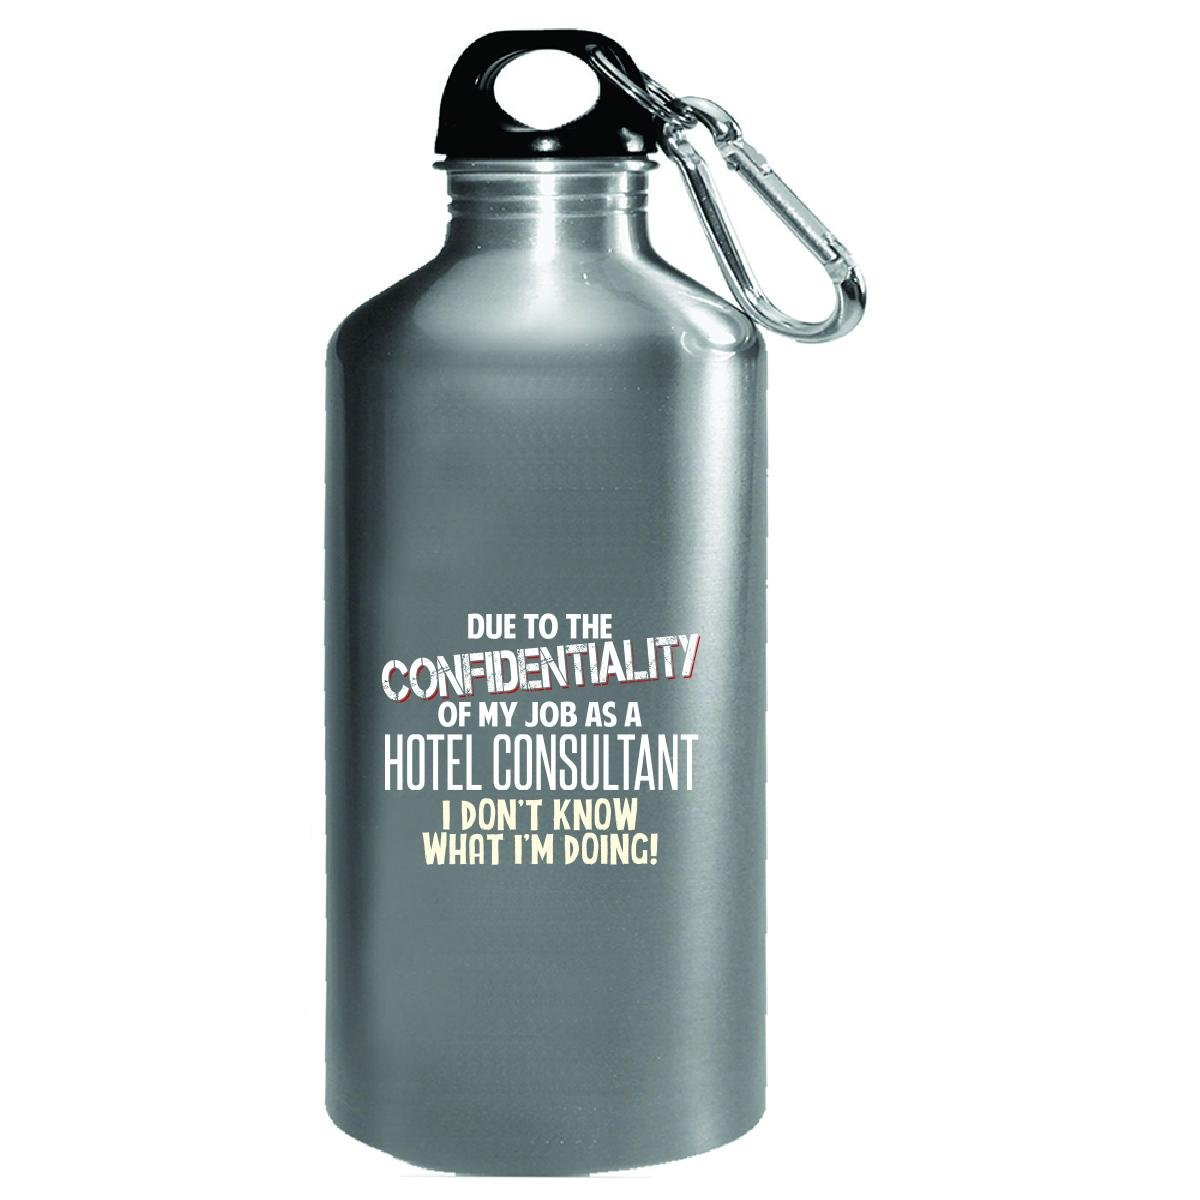 Hotel Consultant Don't Know What I'm Doing Funny Coworker Gift - Water Bottle